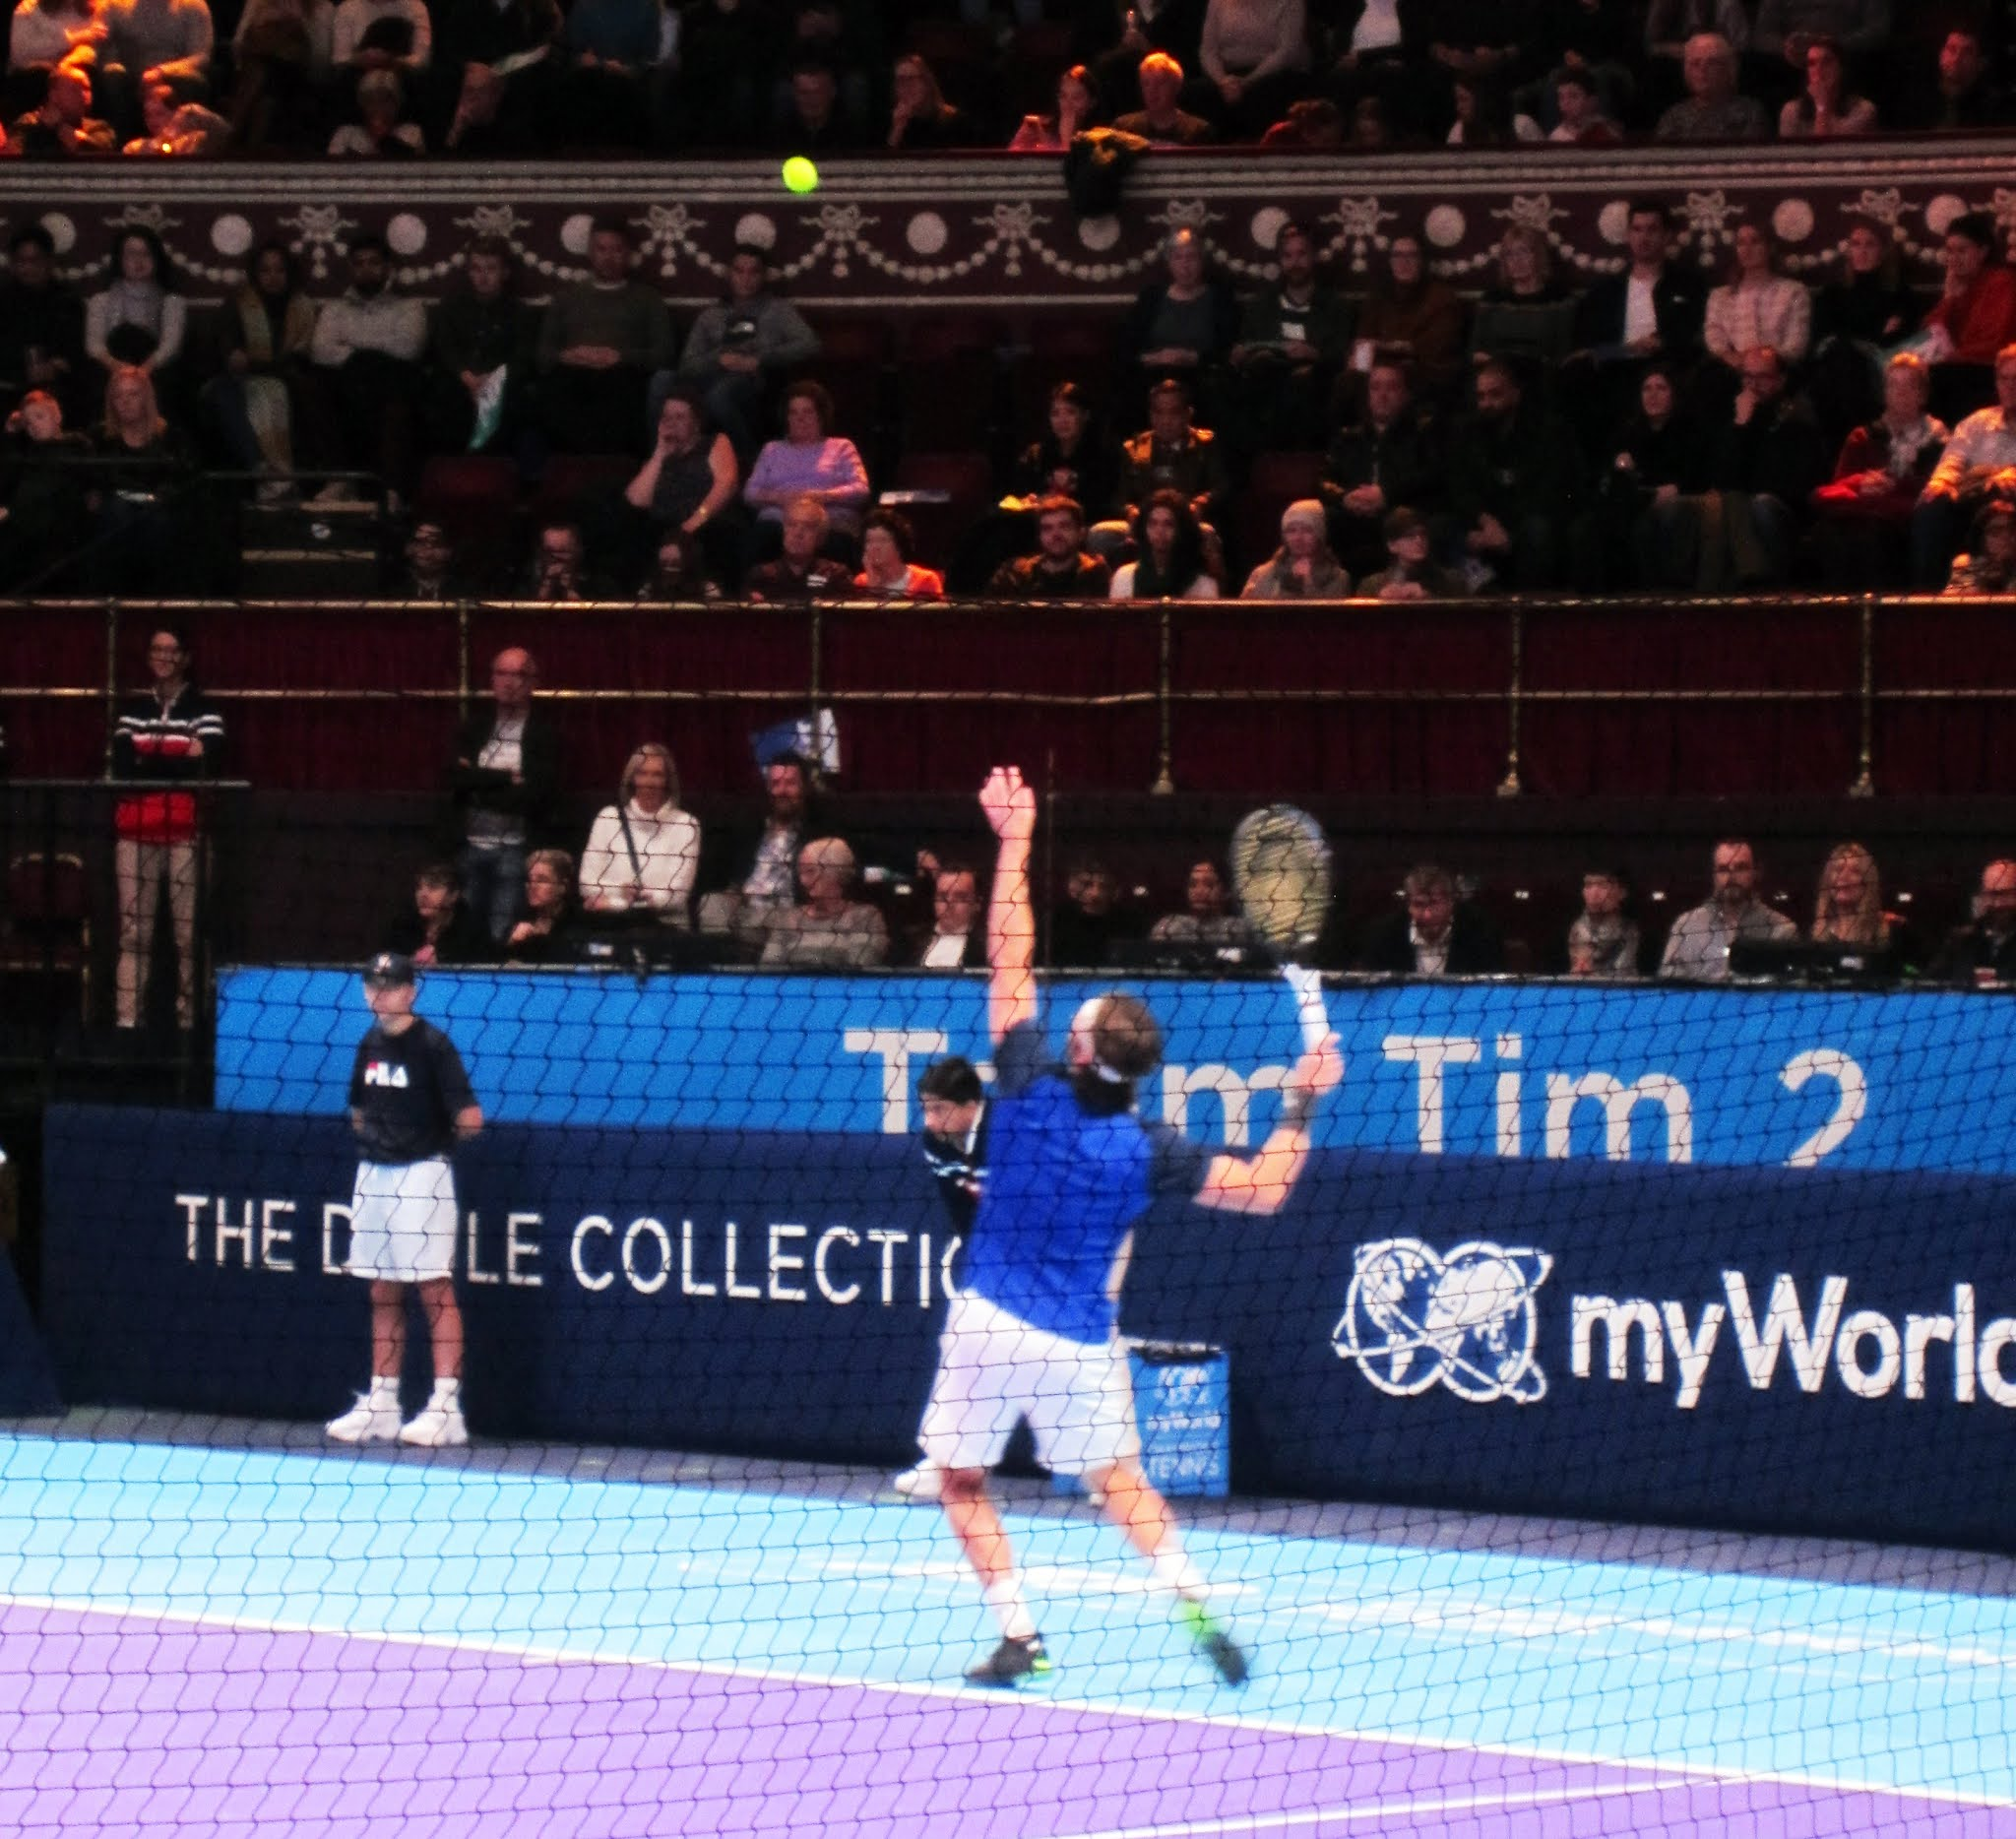 Juan-Carlos Ferrero serves during his match against Tommy Haas at myWorld Champions Tennis